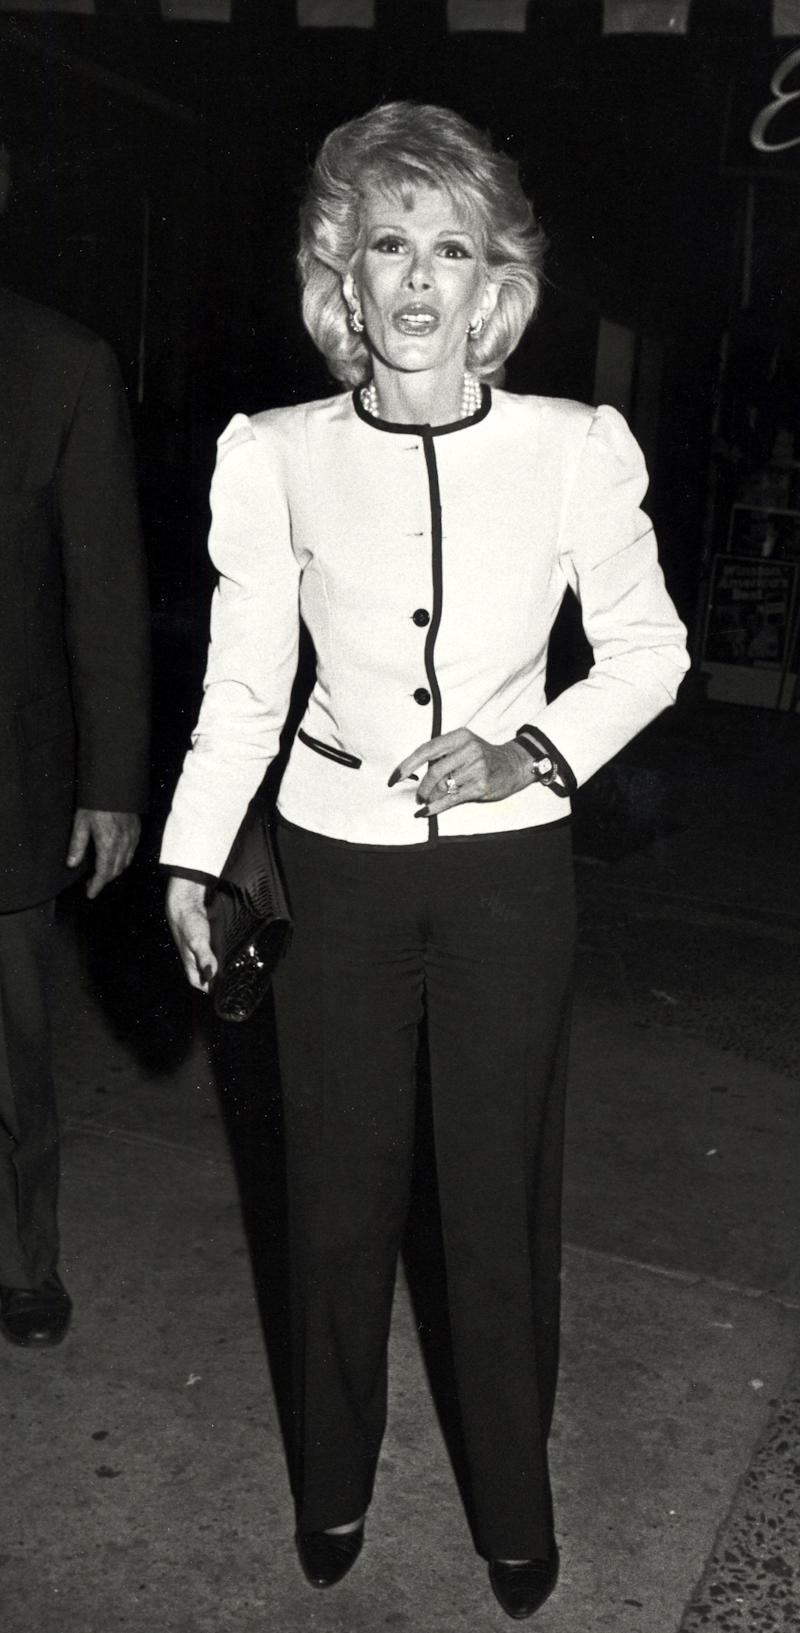 Joan Rivers at Elaine's Restaurant in New York City in 1984. (Ron Galella/WireImage)